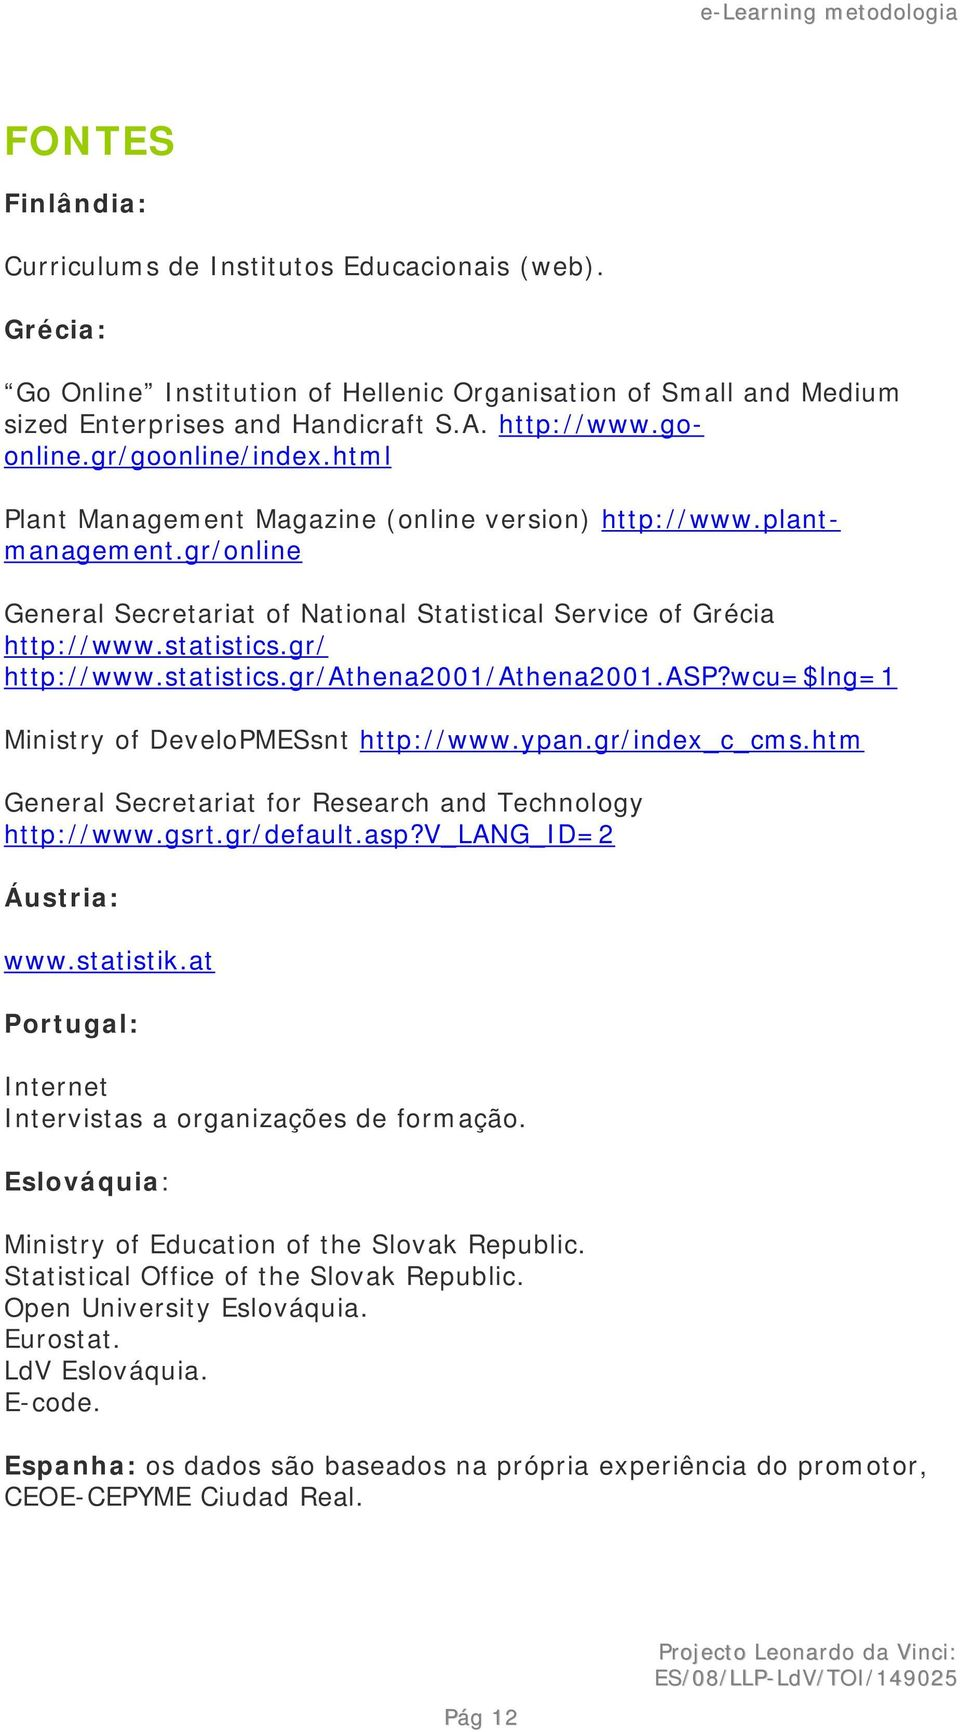 gr/ http://www.statistics.gr/athena2001/athena2001.asp?wcu=$lng=1 Ministry of DeveloPMESsnt http://www.ypan.gr/index_c_cms.htm General Secretariat for Research and Technology http://www.gsrt.